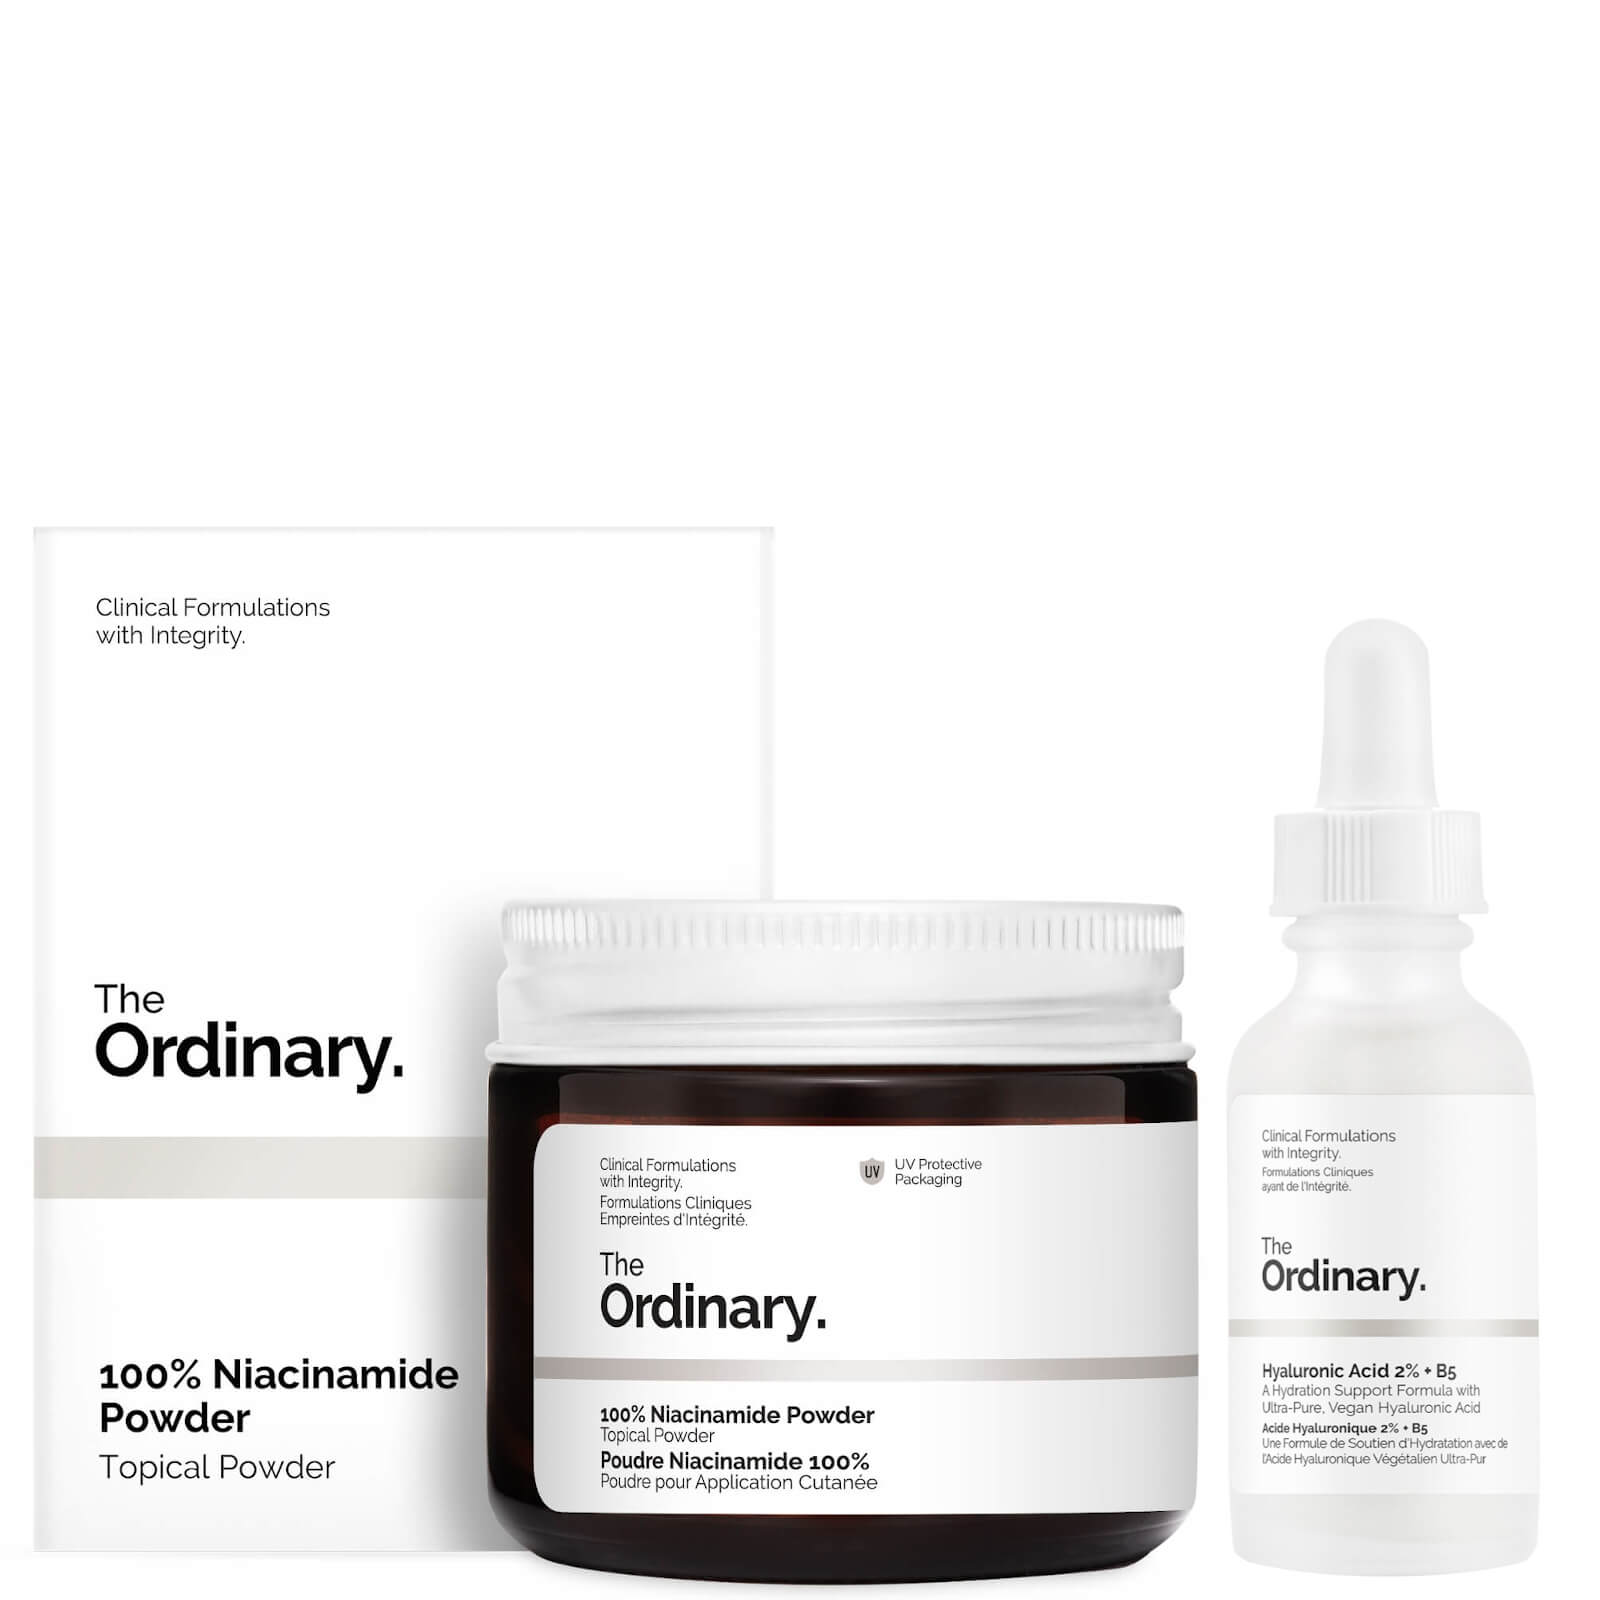 The Ordinary Refine and Hydrate Serum Set